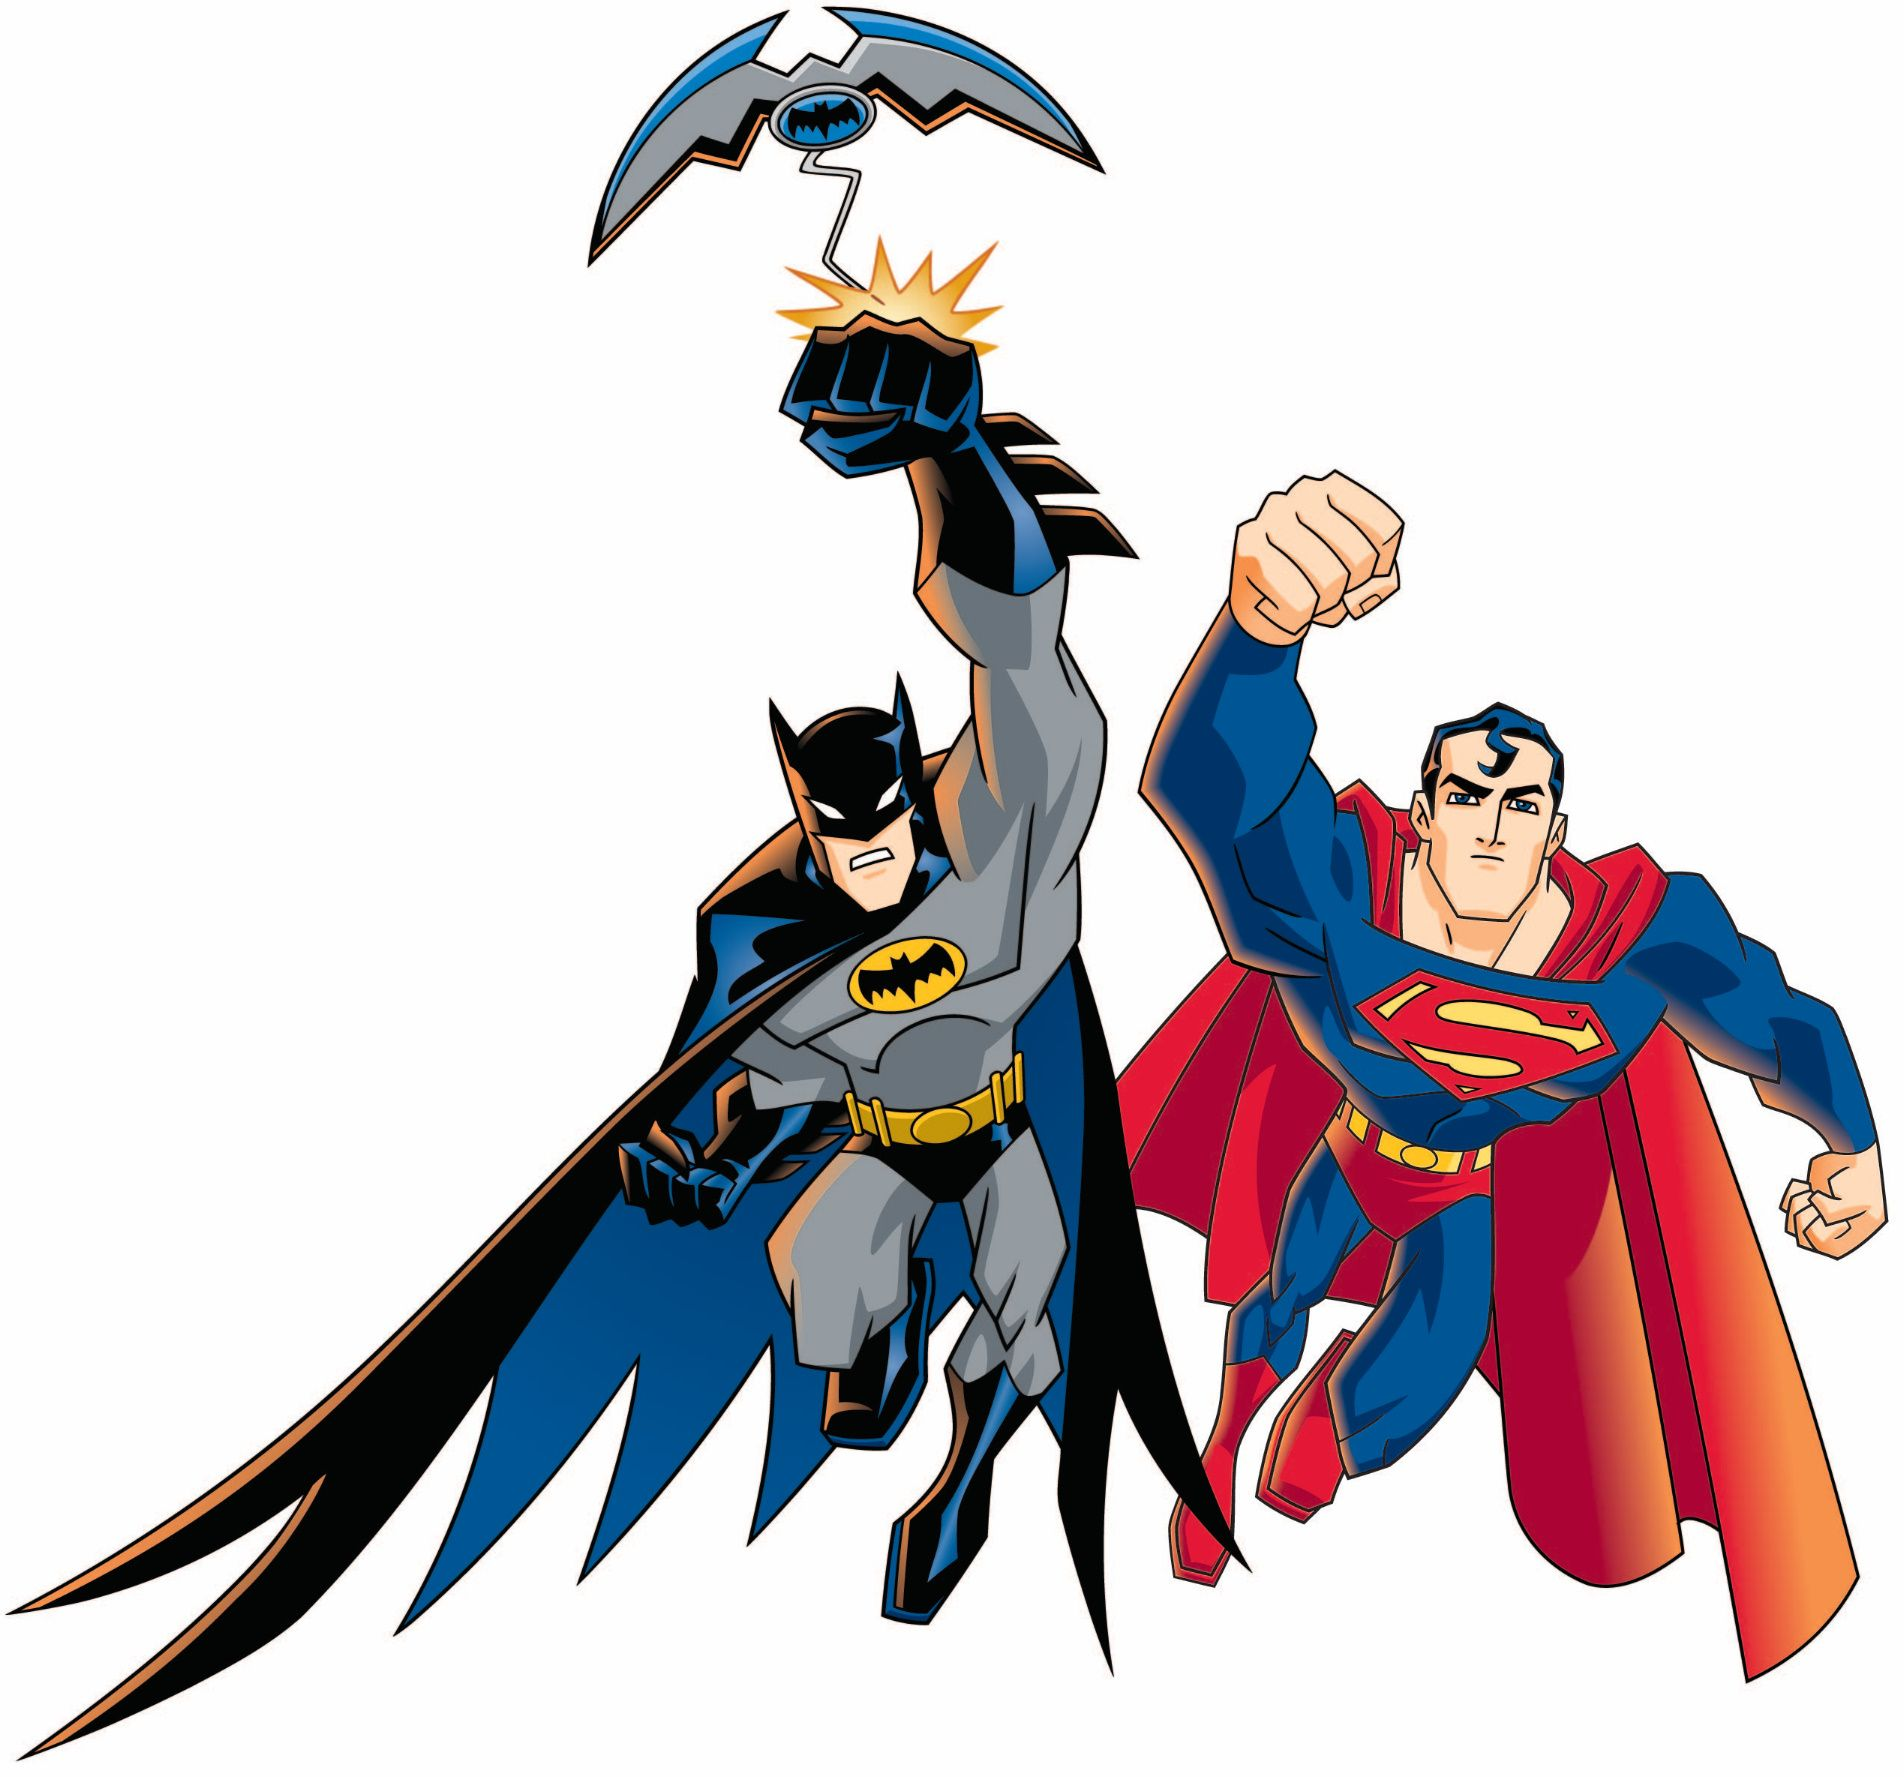 pictures of cartoons | Superman on The Batman animated series ...